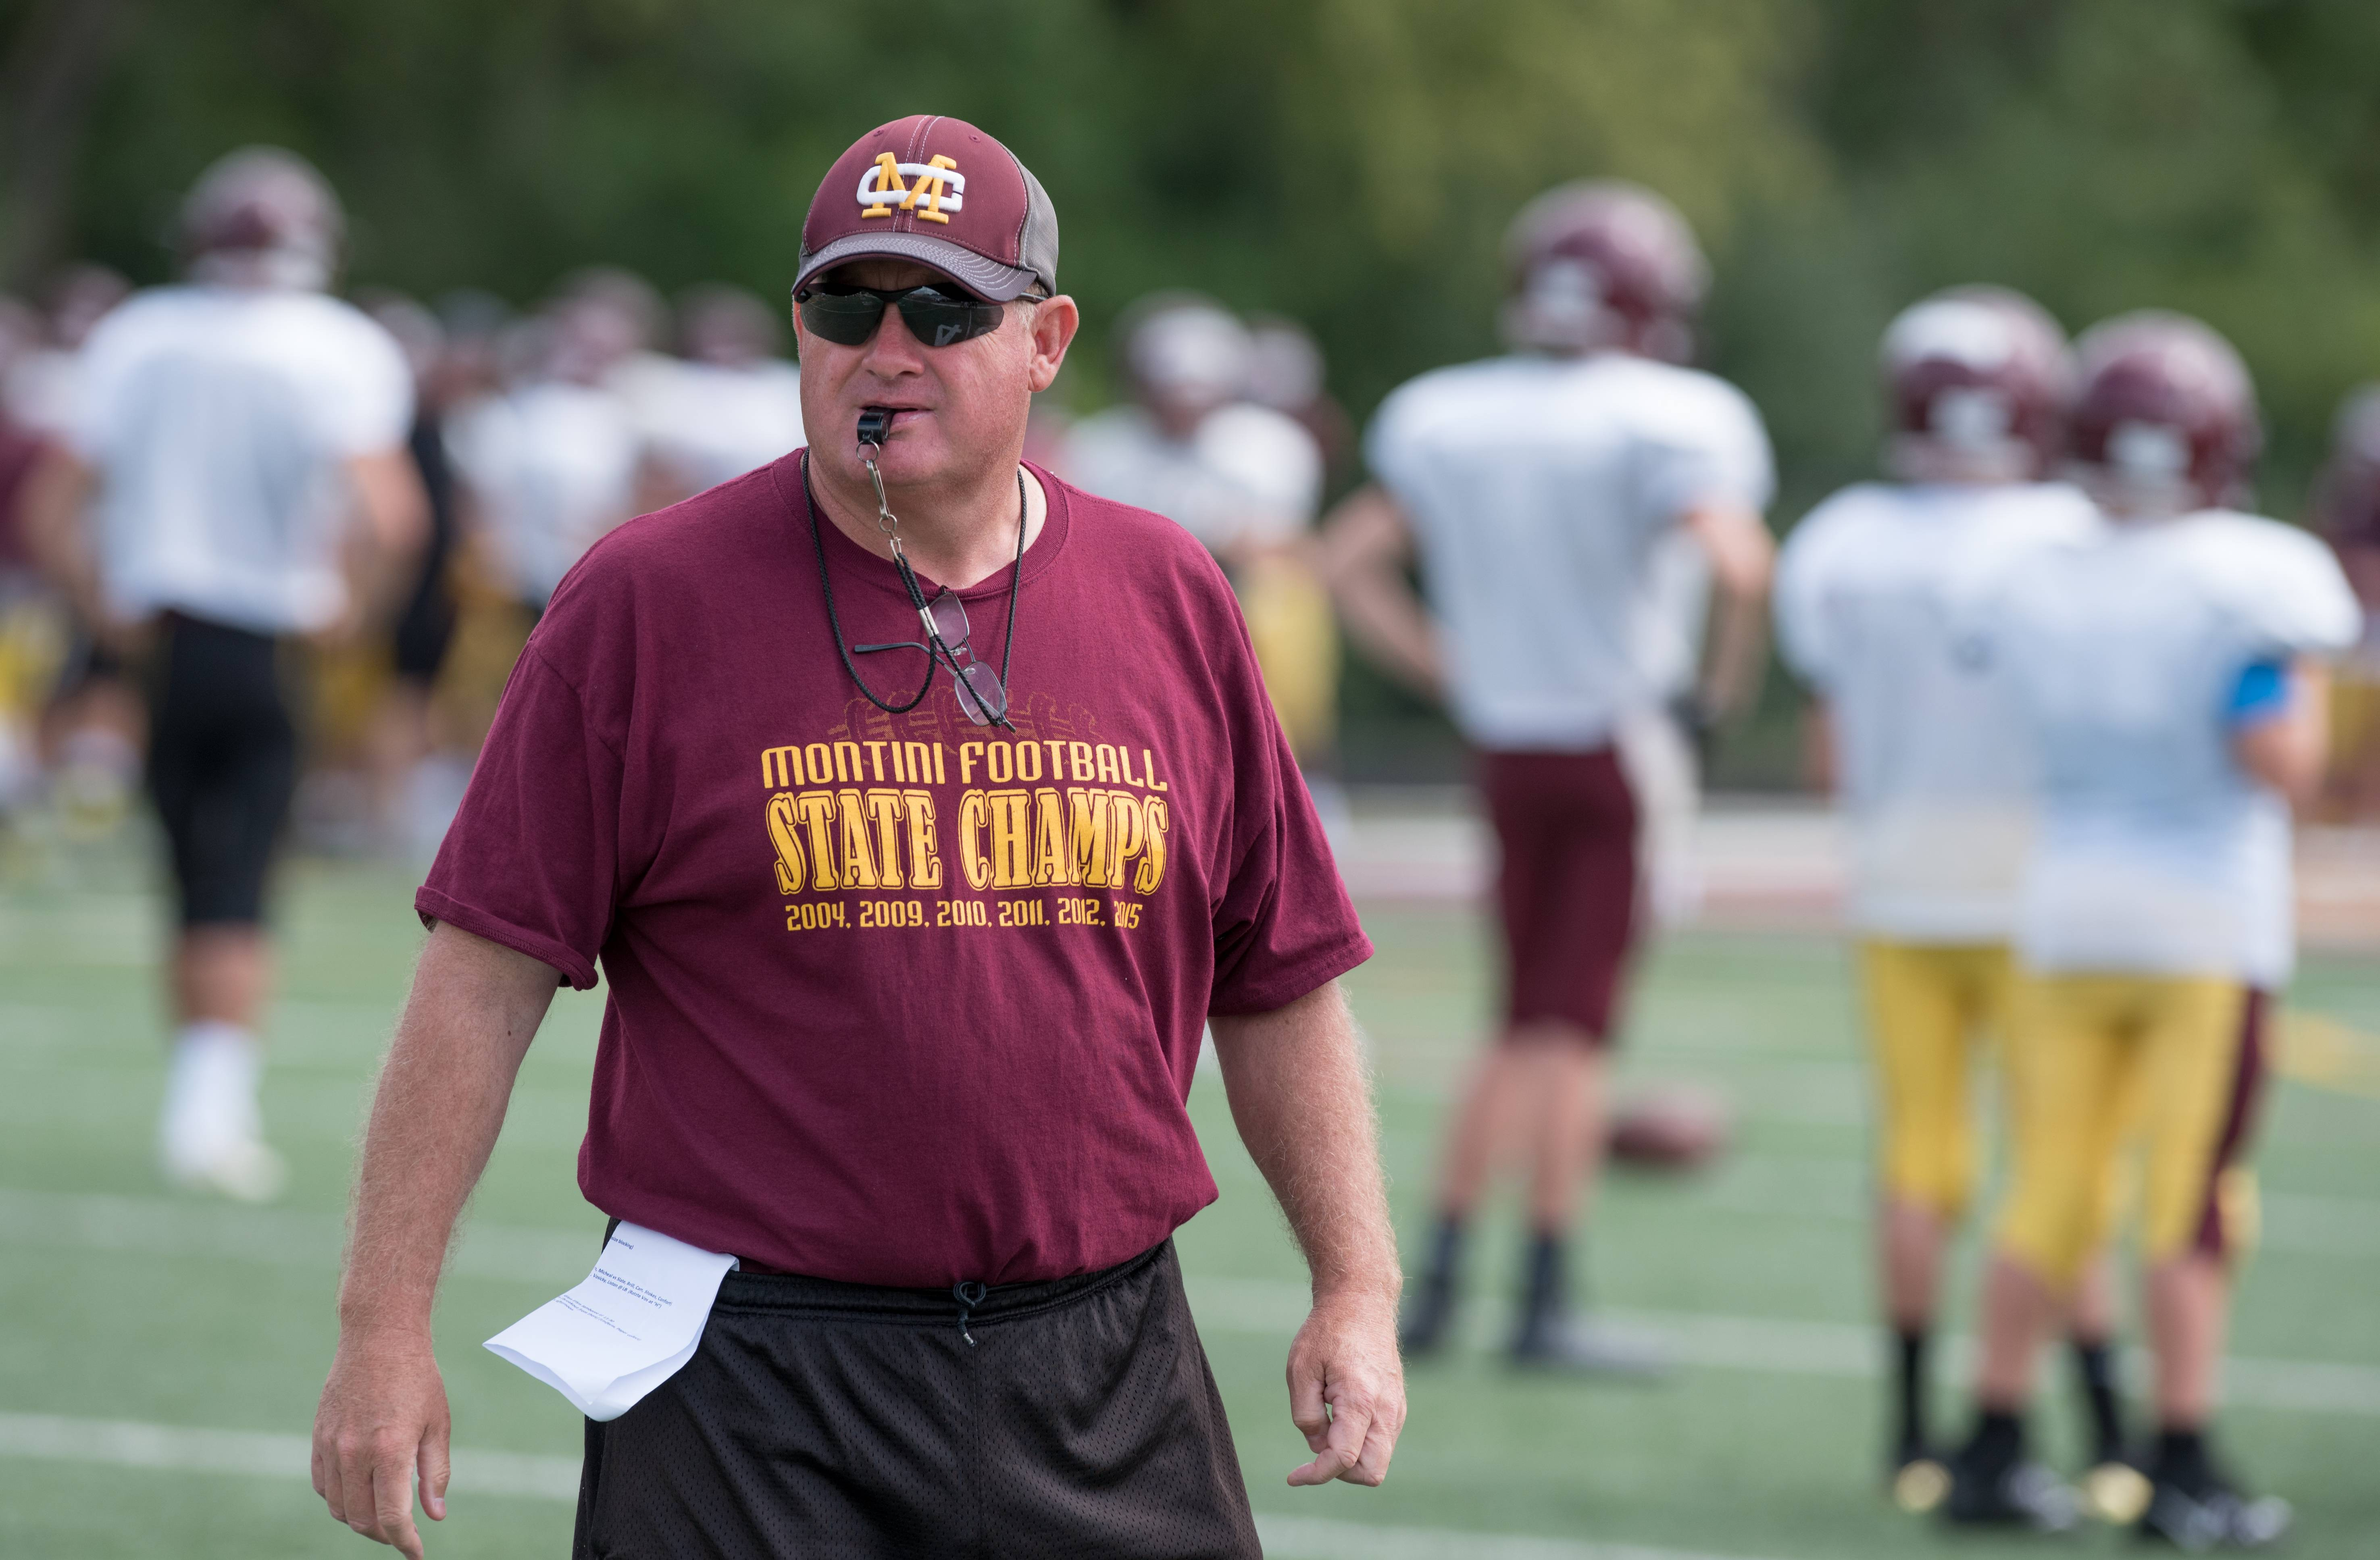 Montini varsity football head coach Mike Bukovsky during practice on August 12, 2017.